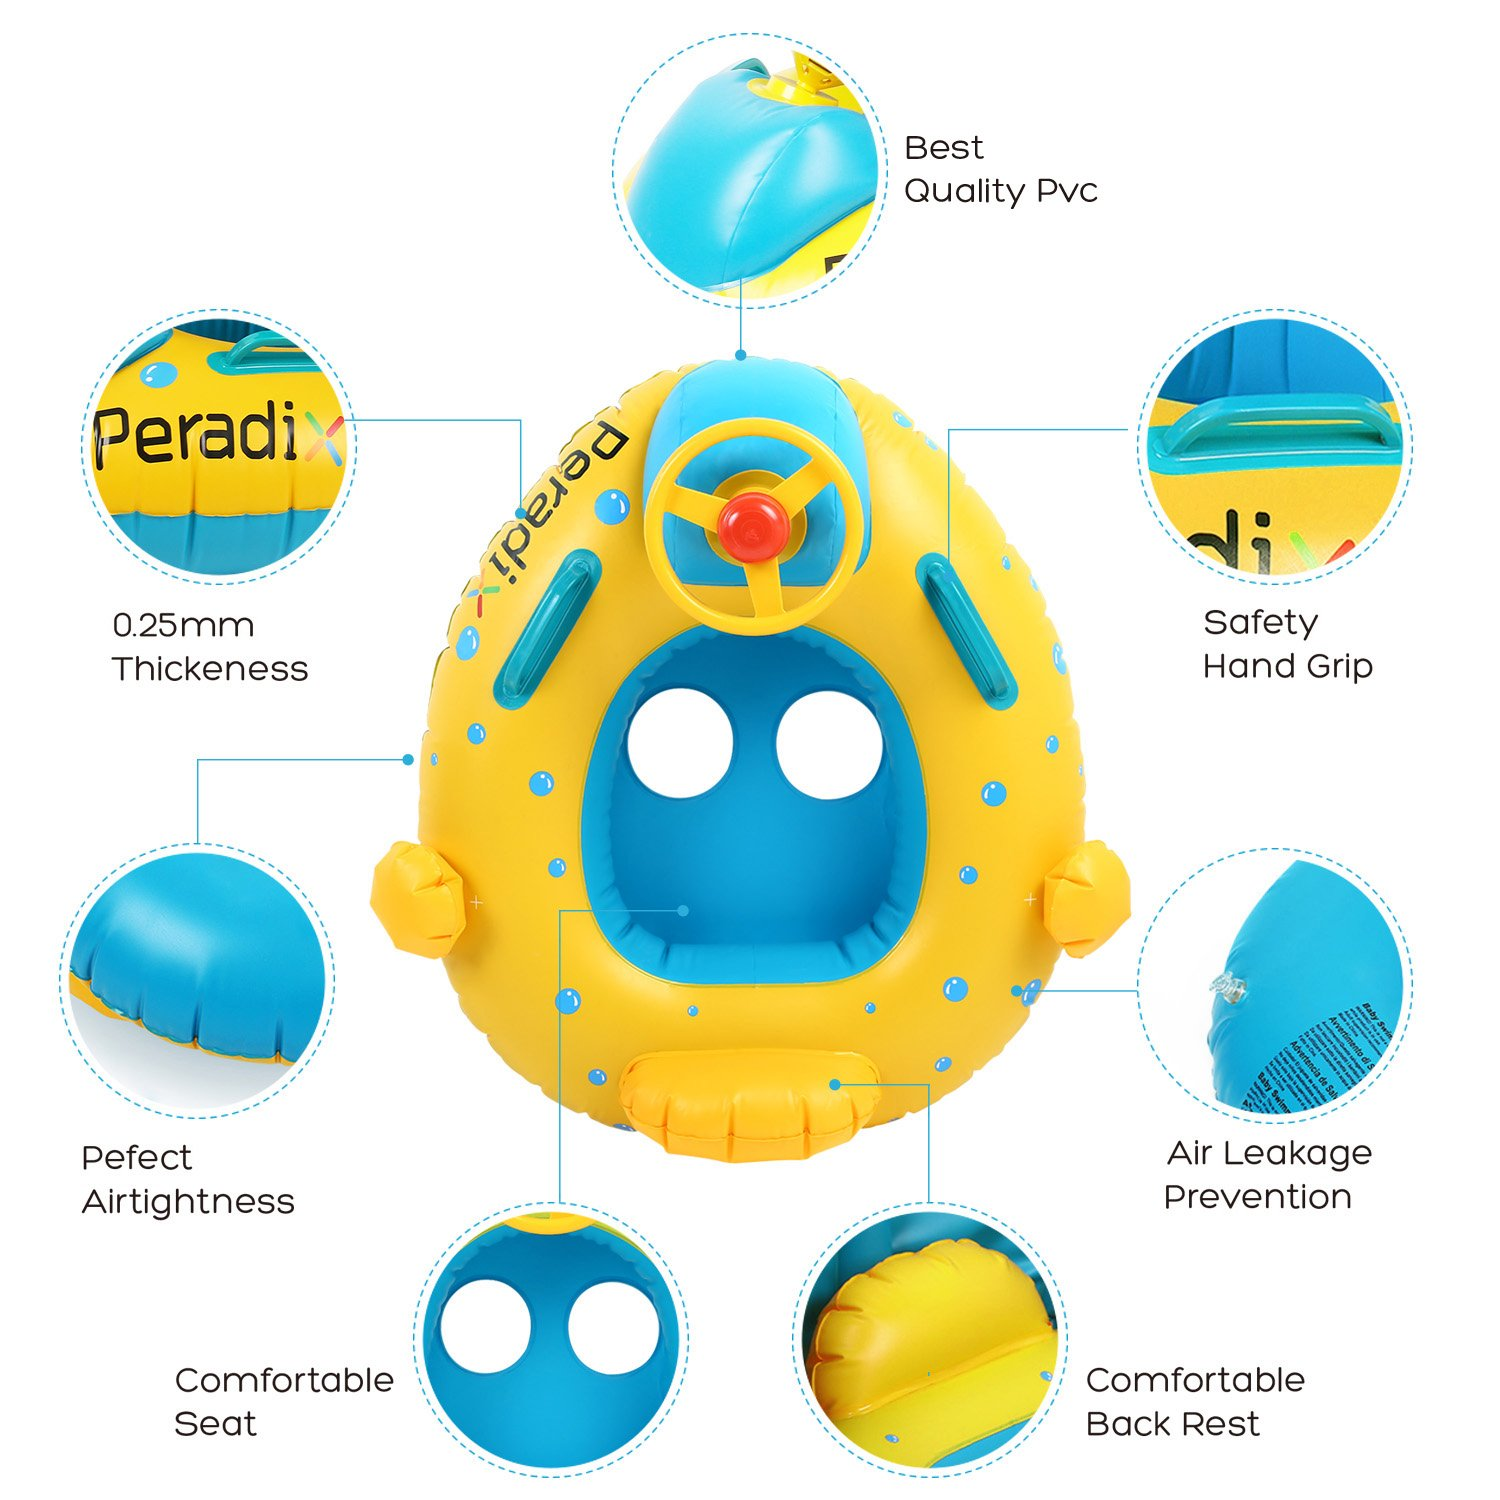 Peradix Infant Pool Float with Canopy Inflatable Baby Water Float Boat with Sunshade for Pool Swimming Ring Floater Raft Toys for Toddlers Kids by Peradix (Image #3)